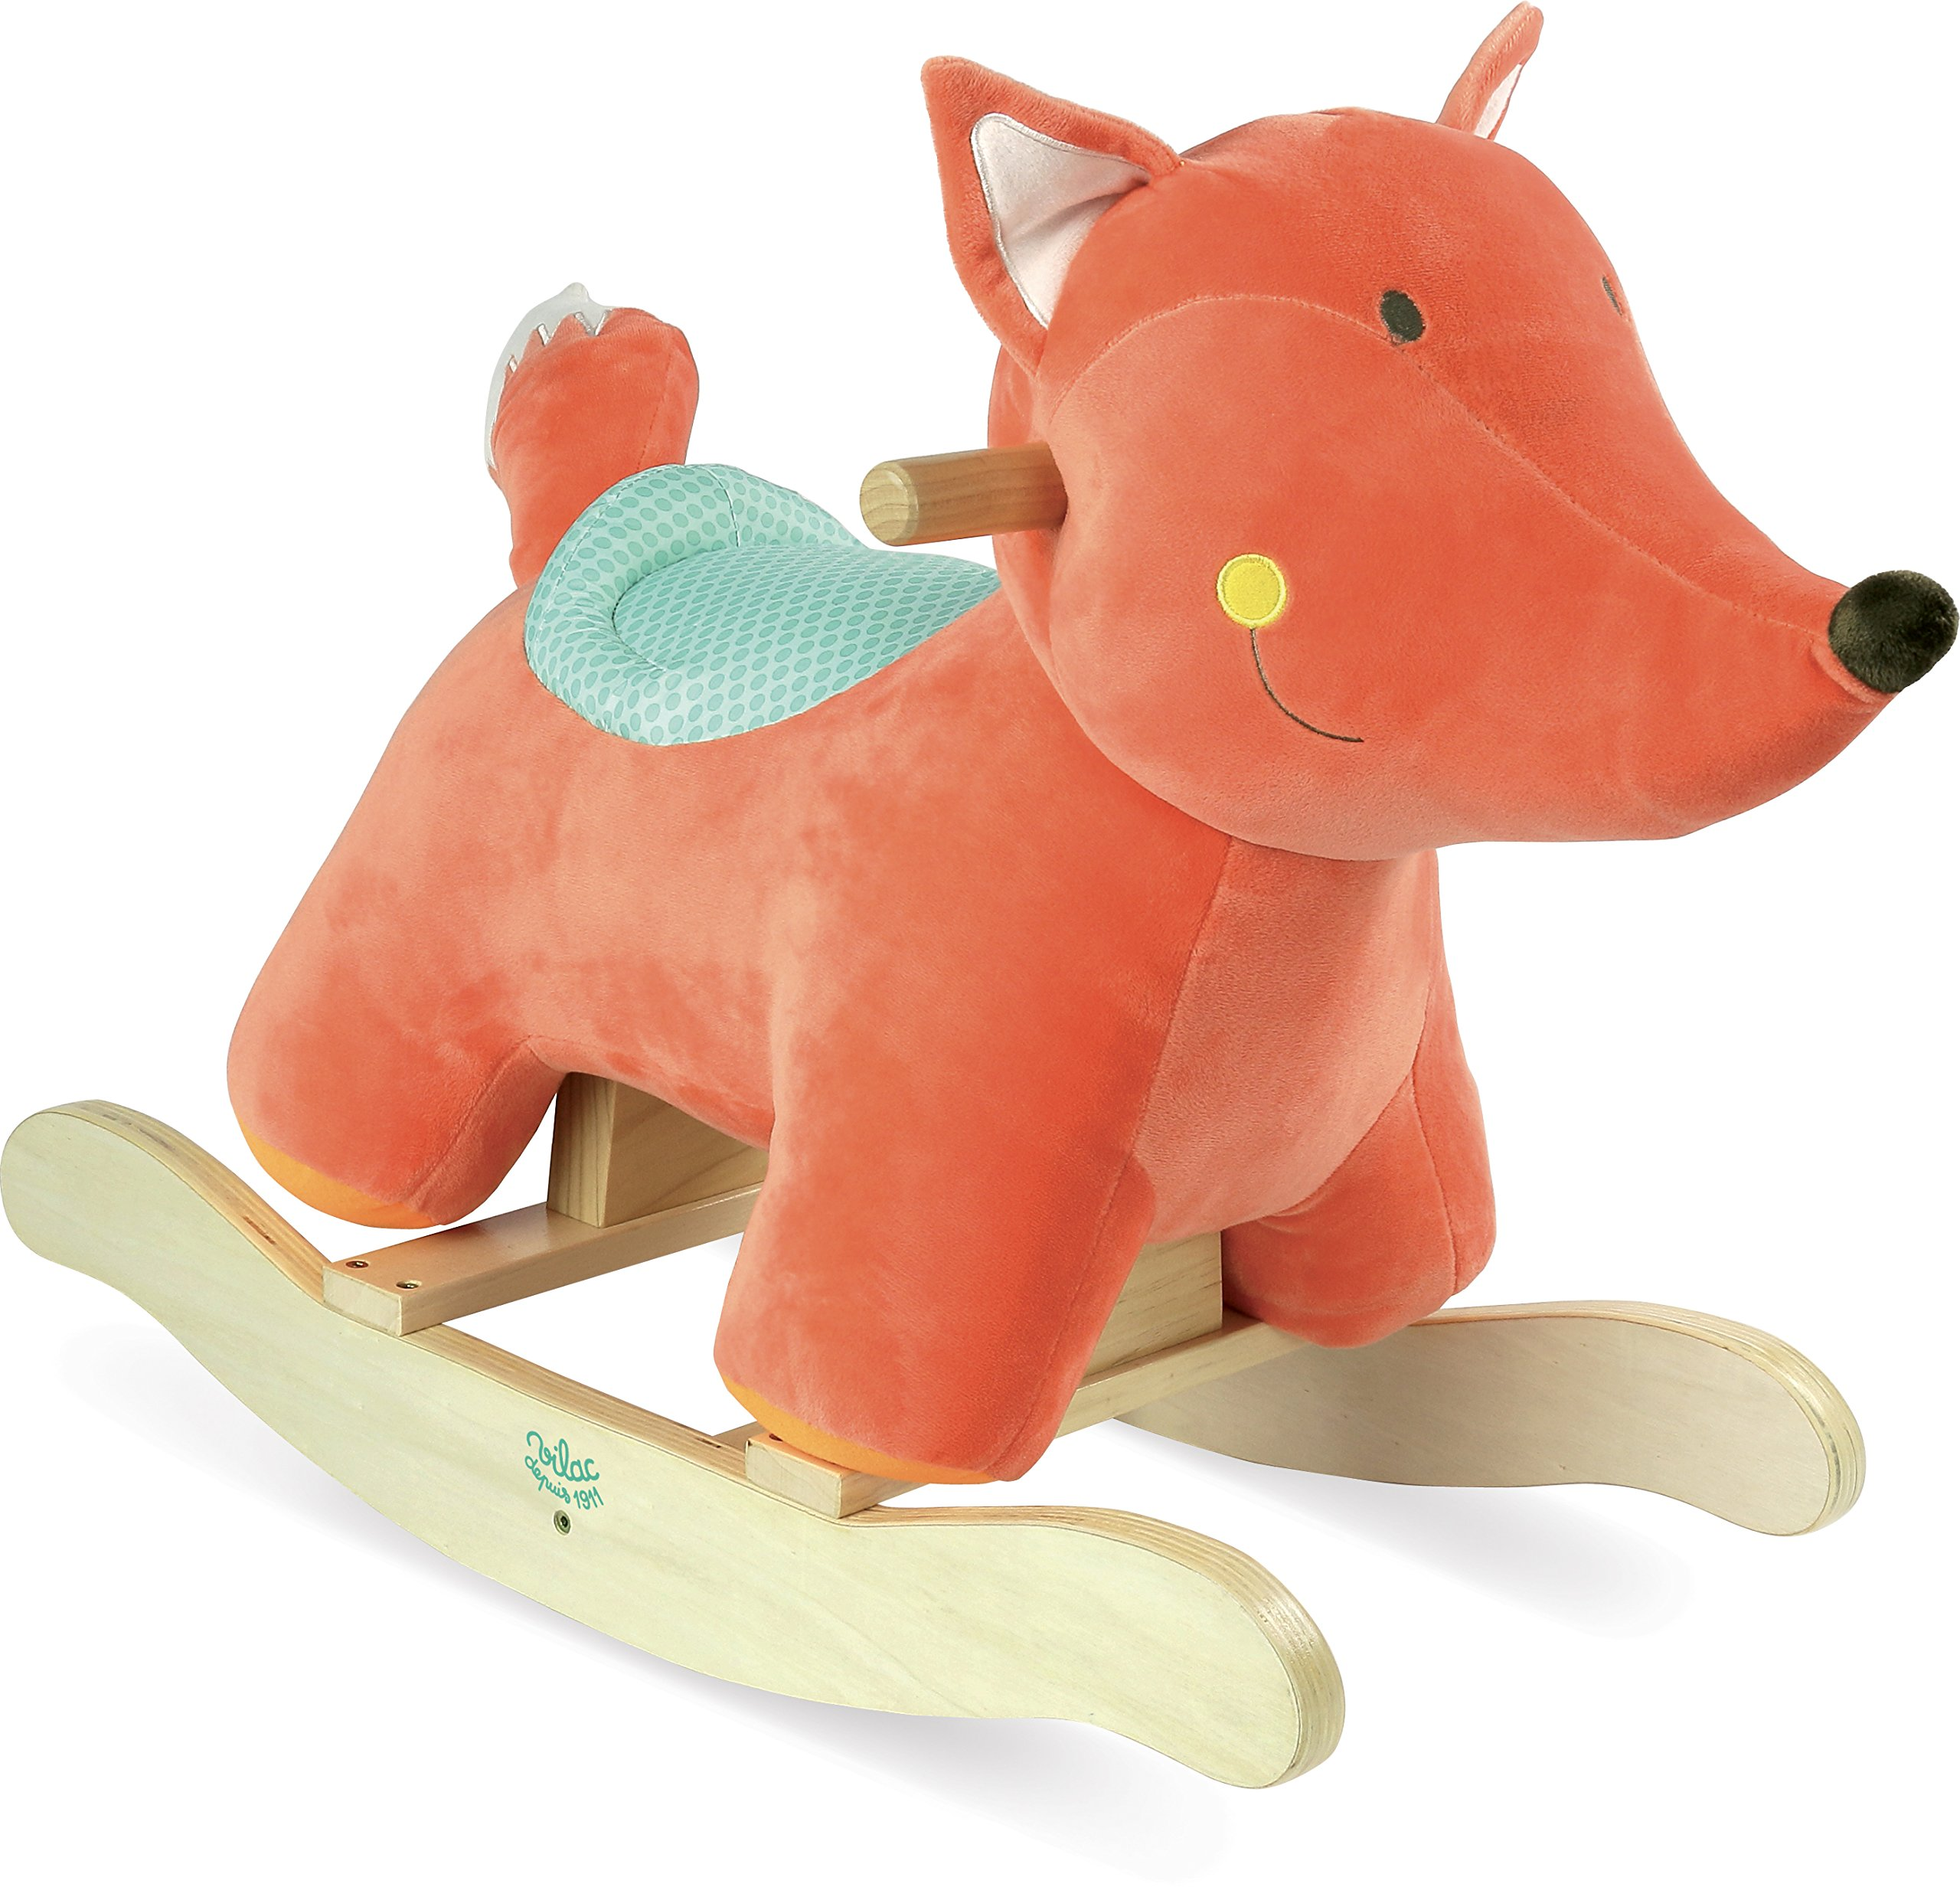 Vilac Vilac1114 Plush Rocking Fox